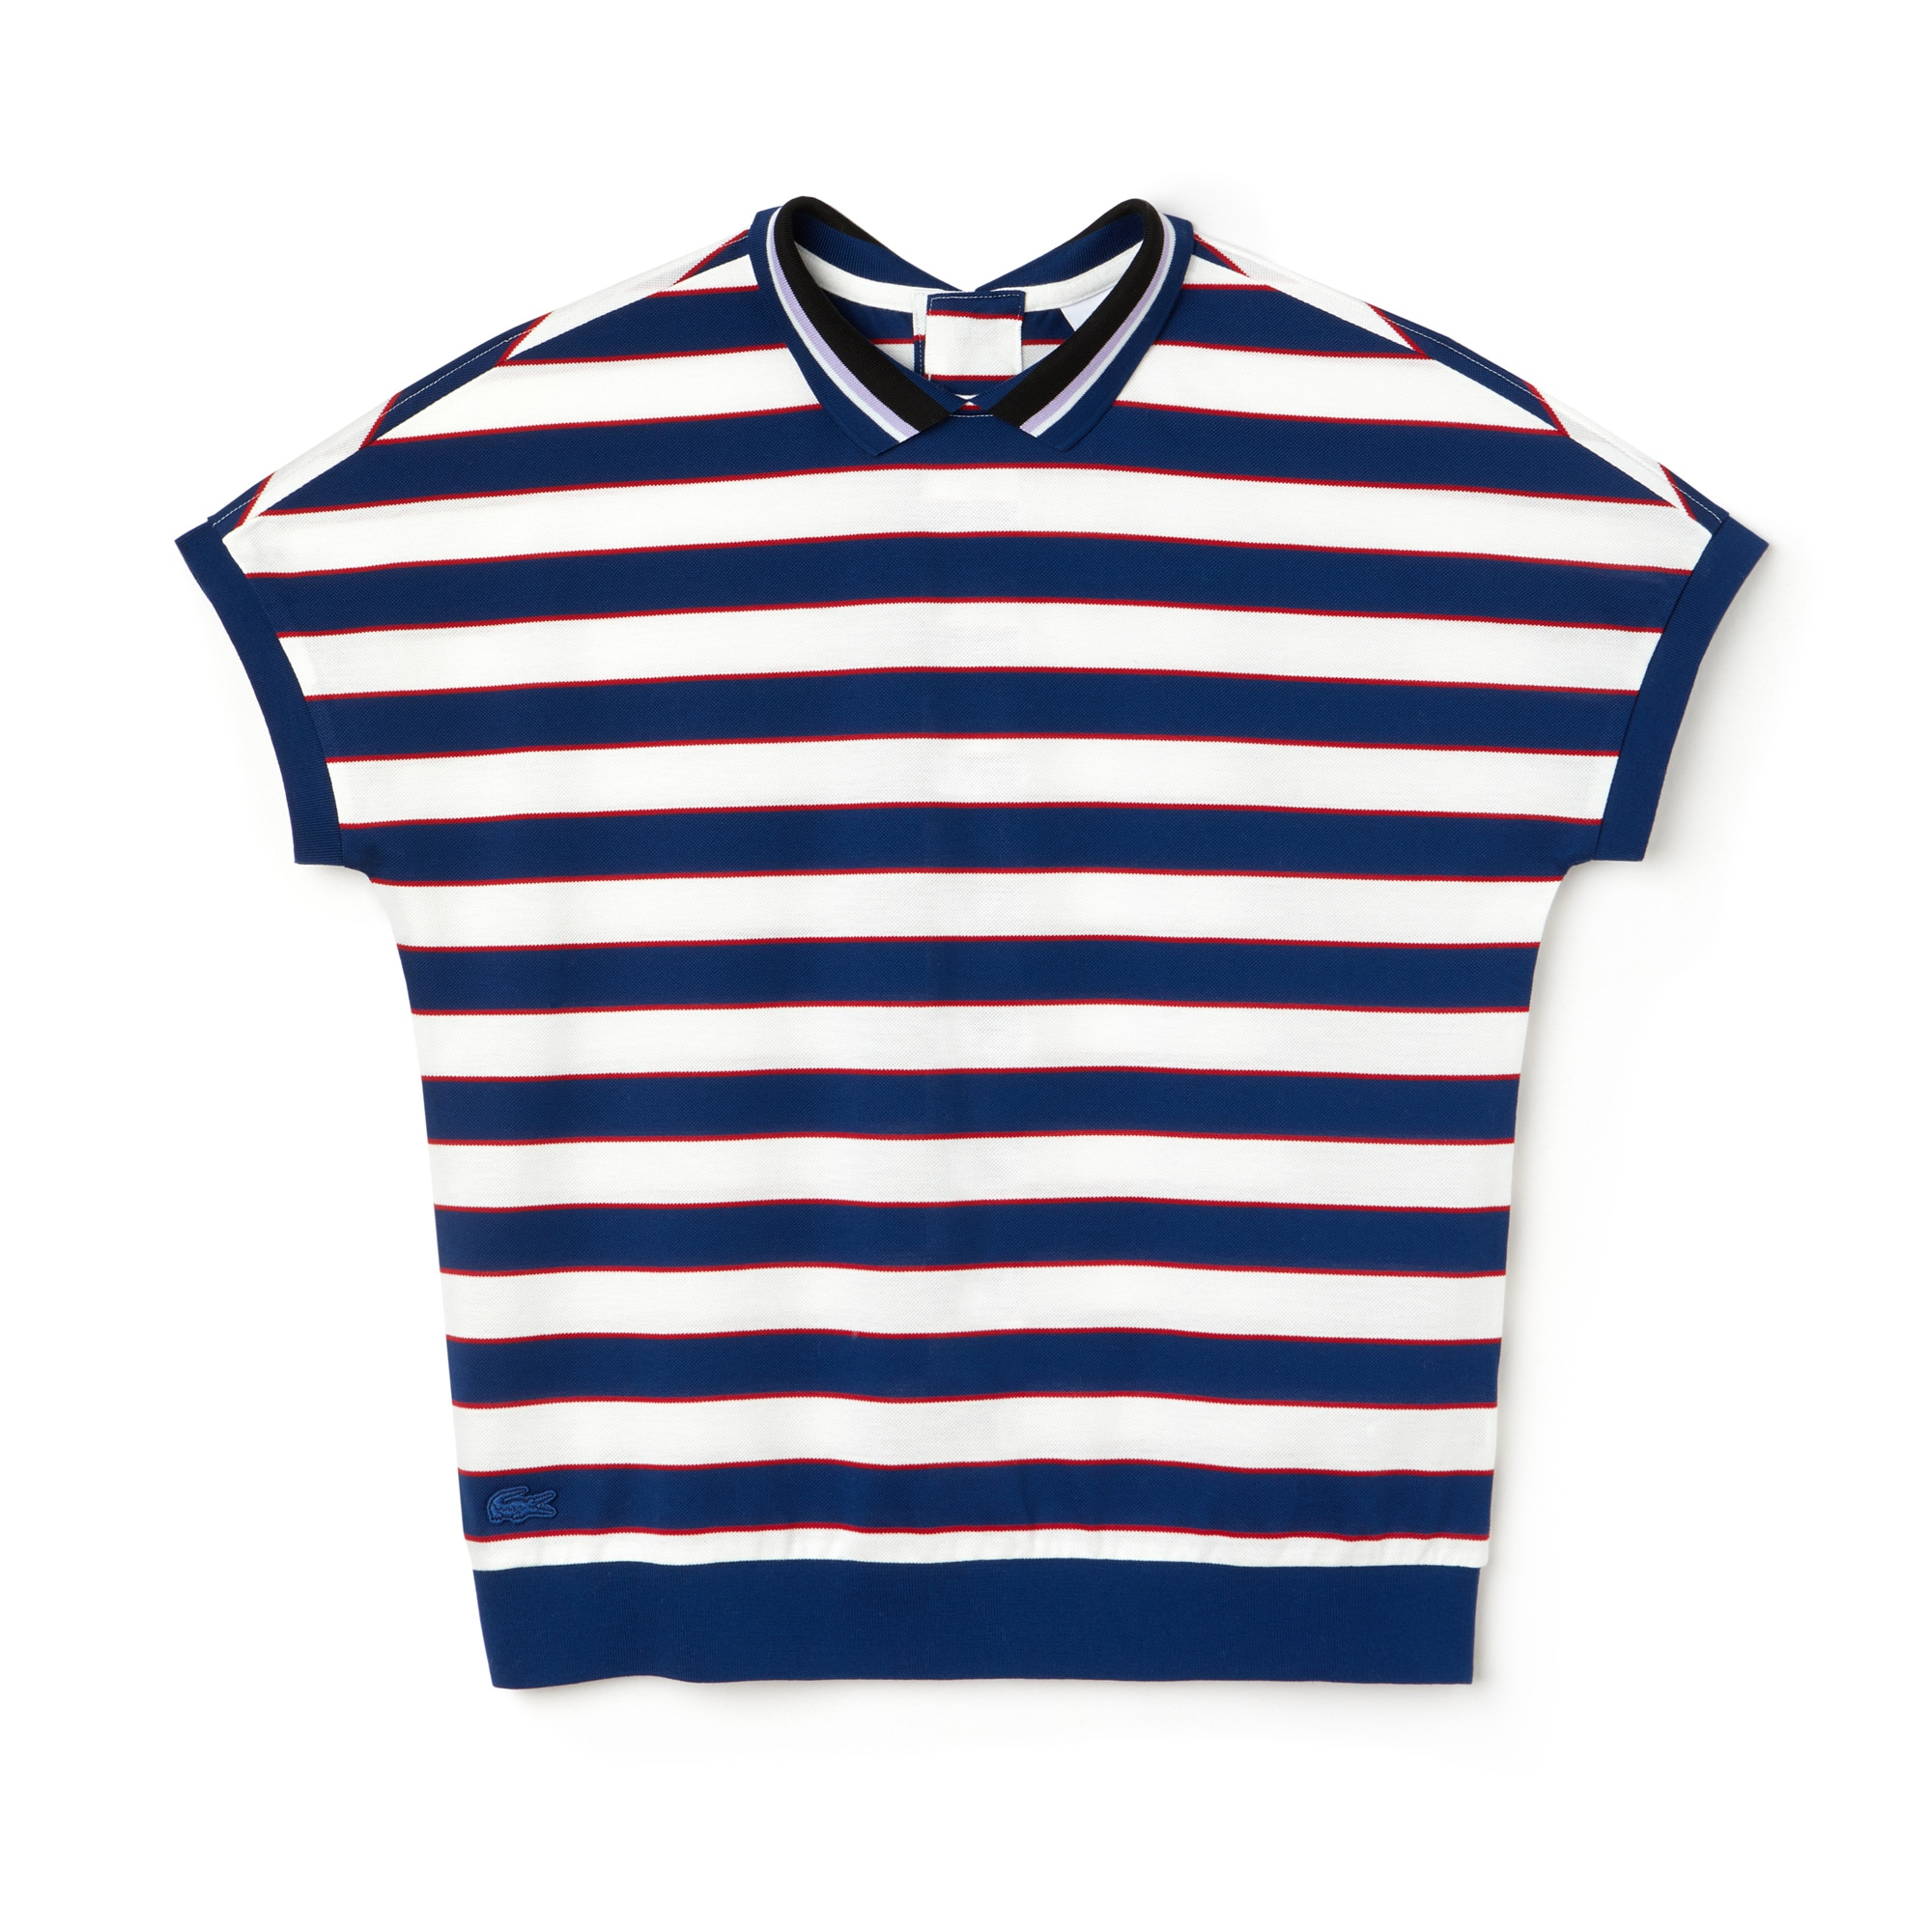 Women's Back Button Colorblock Striped Piqué Polo